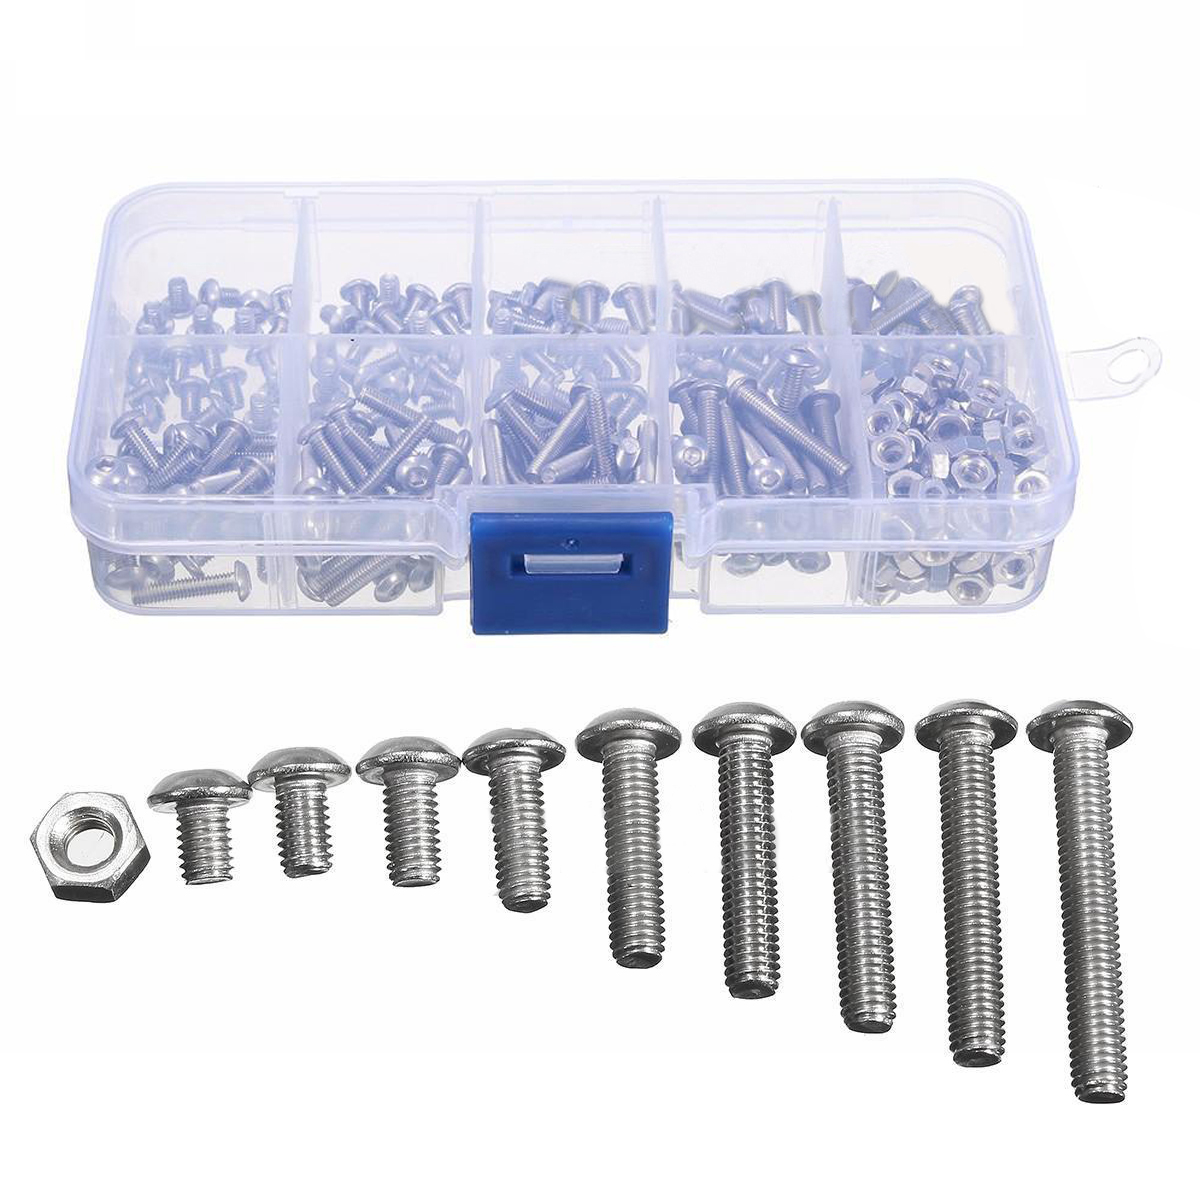 340pcs Assorted Stainless Steel M3 Screw 5/6/8/10/12/14/16/18/20mm with Hex Nuts Bolt Cap Socket Set 250pcs set m3 5 6 8 10 12 14 16 20 25mm hex socket head cap screw stainless steel m3 screw accessories kit sample box